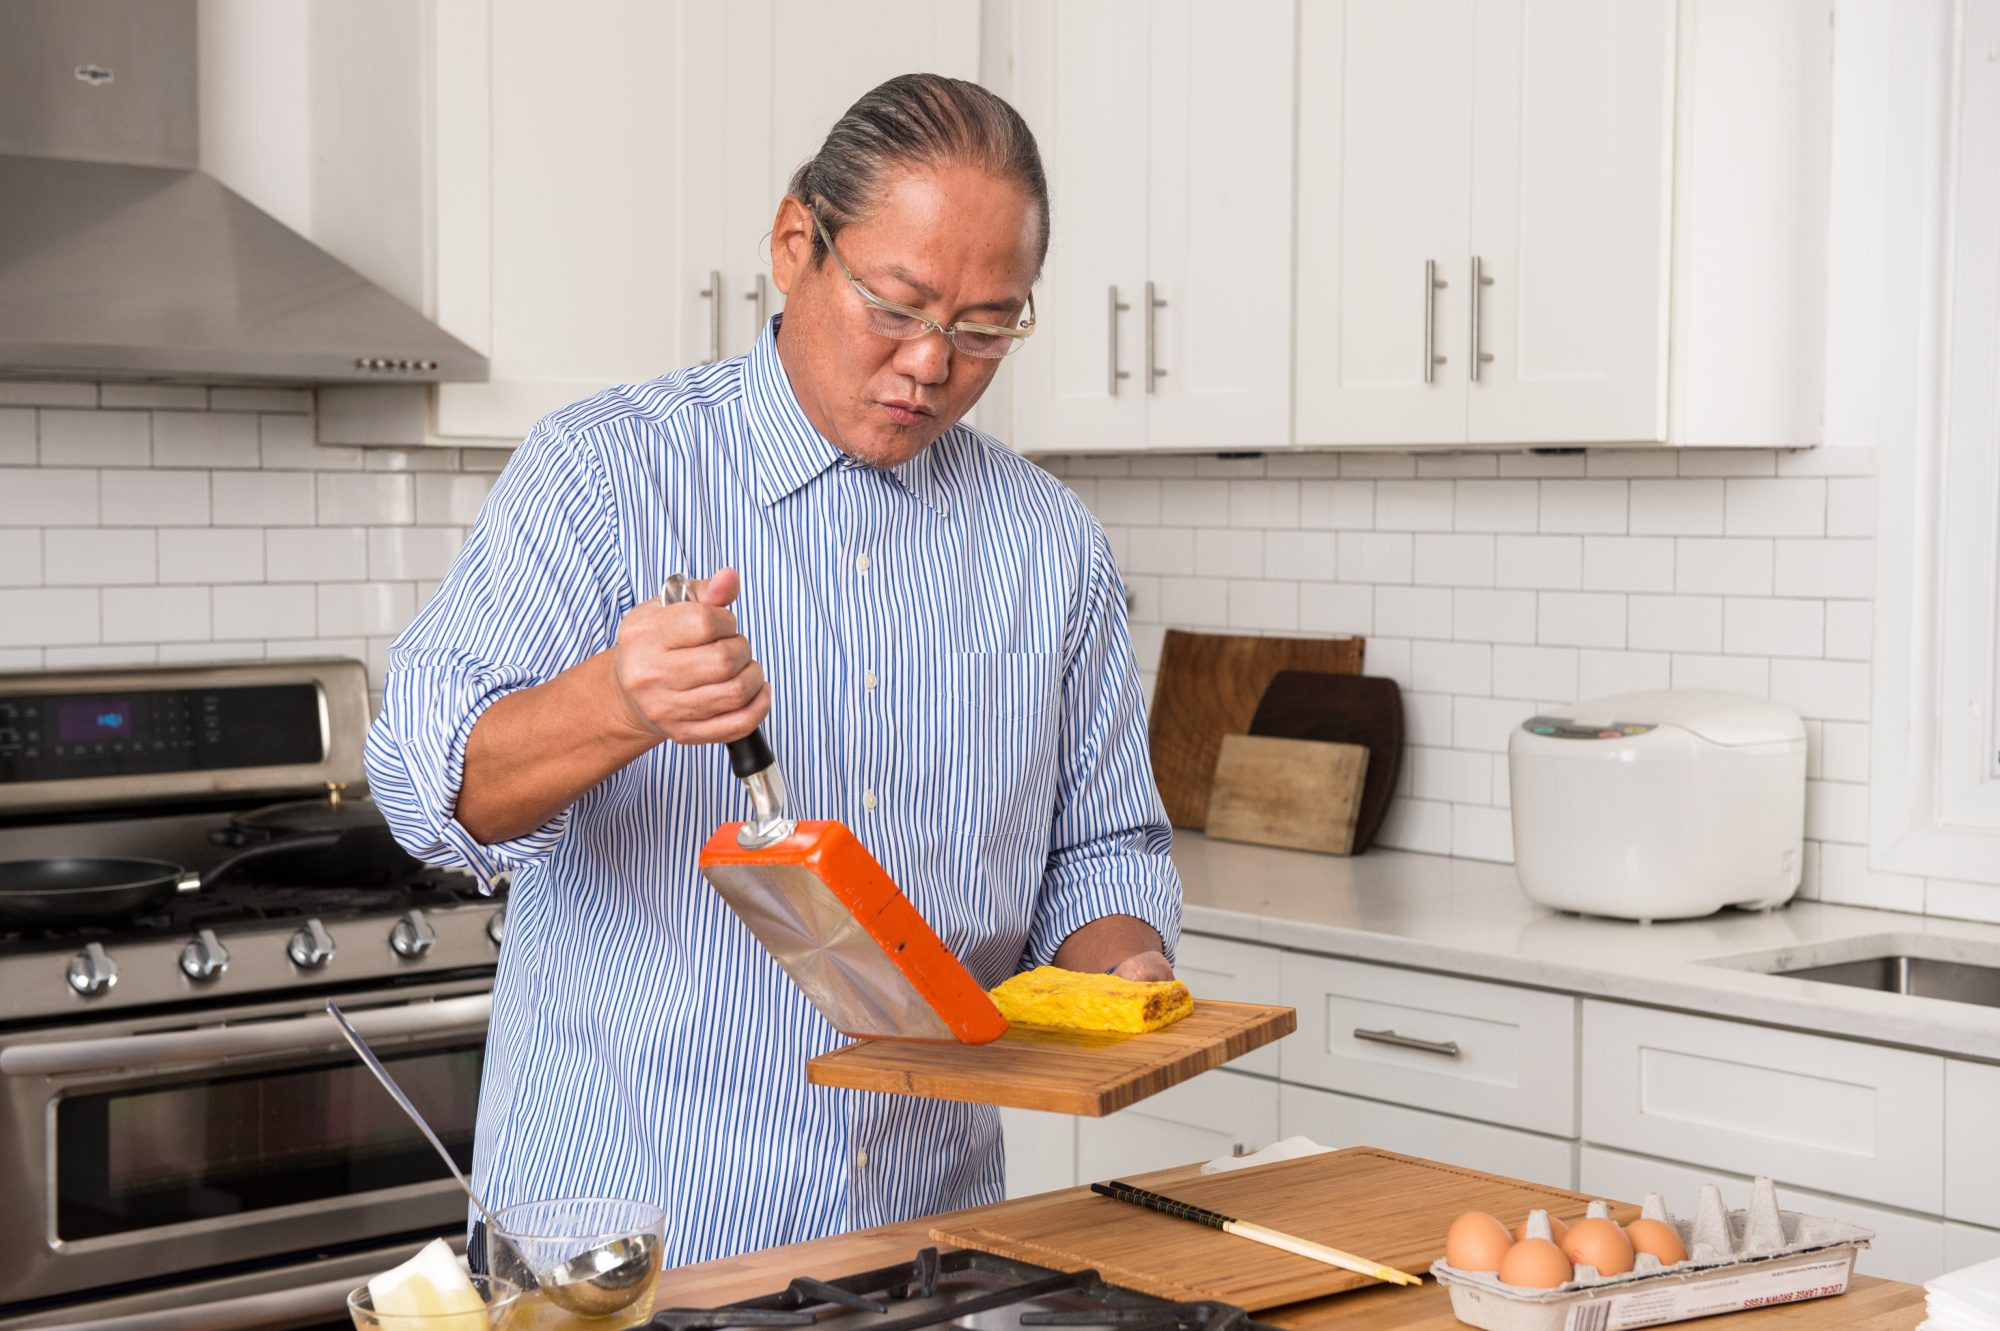 The Japanese Breakfast That Chef Morimoto Wishes More Americans Would Eat